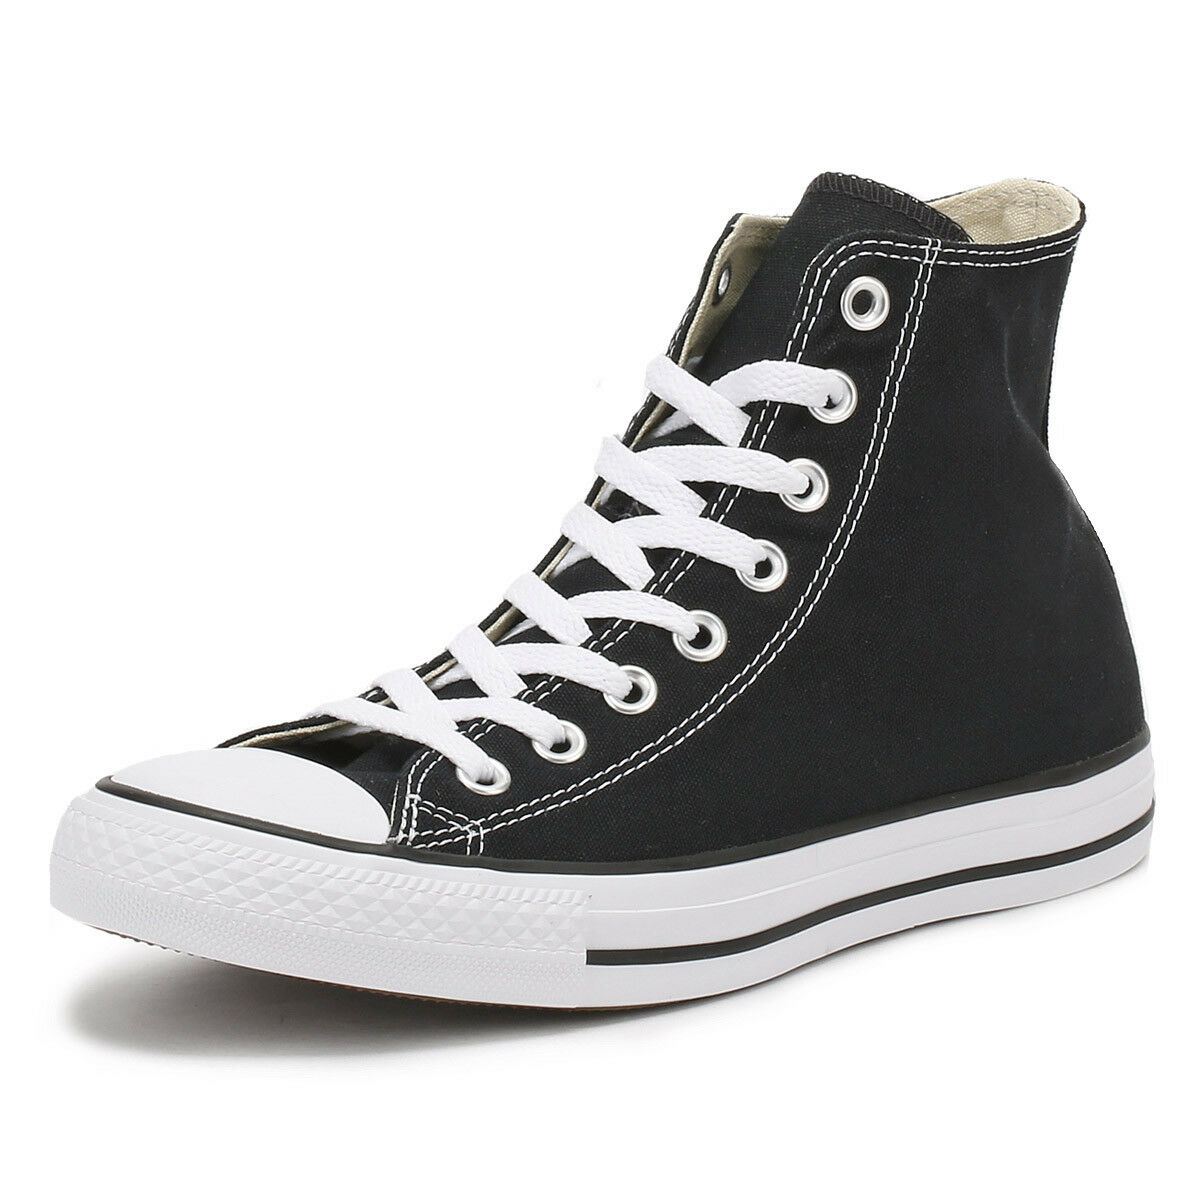 Converse Mens Womens Unisex Black All Star Trainers Unisex Womens Hi Tops Canvas Sneakers 8c5cc2